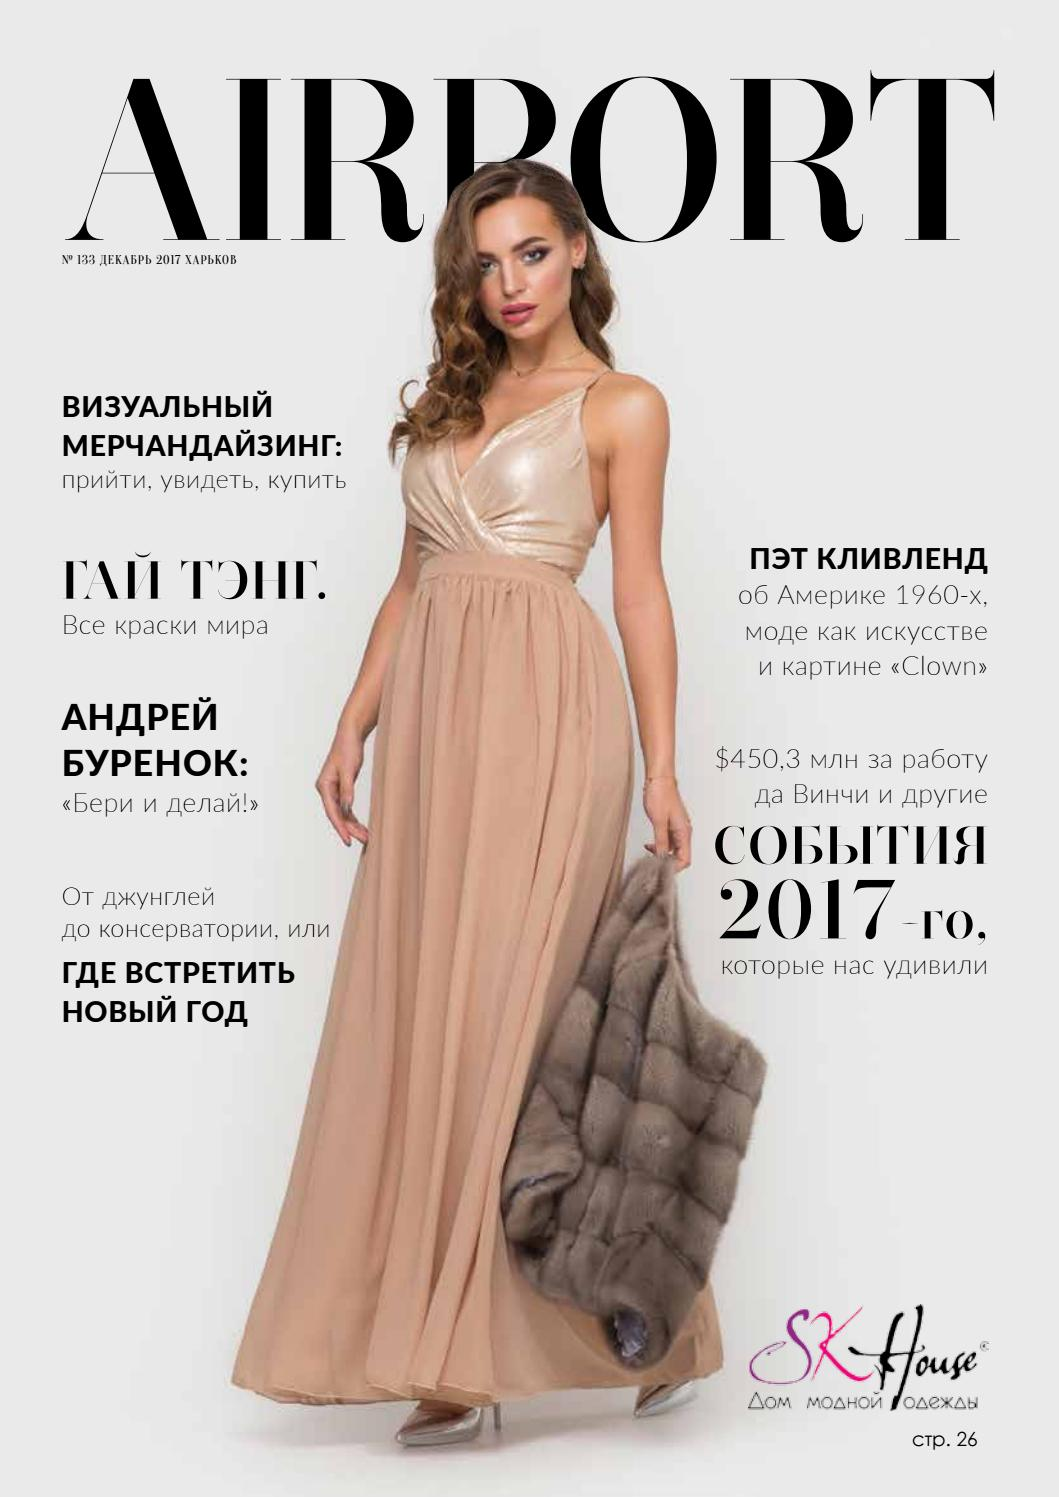 Airport December 2017 by Airport Magazine - issuu 8b423f079a9